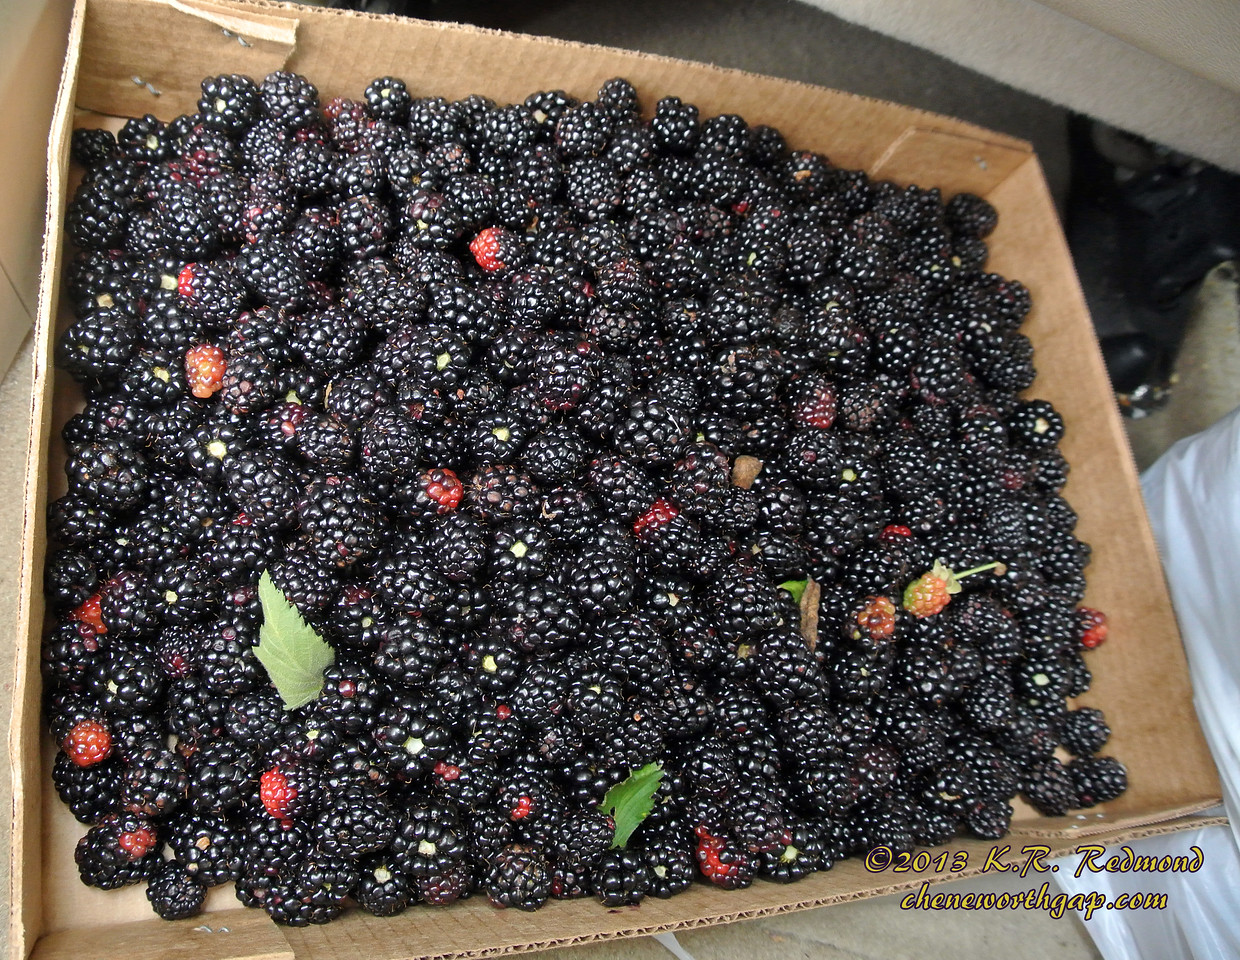 Blackberries (Box No. 1)